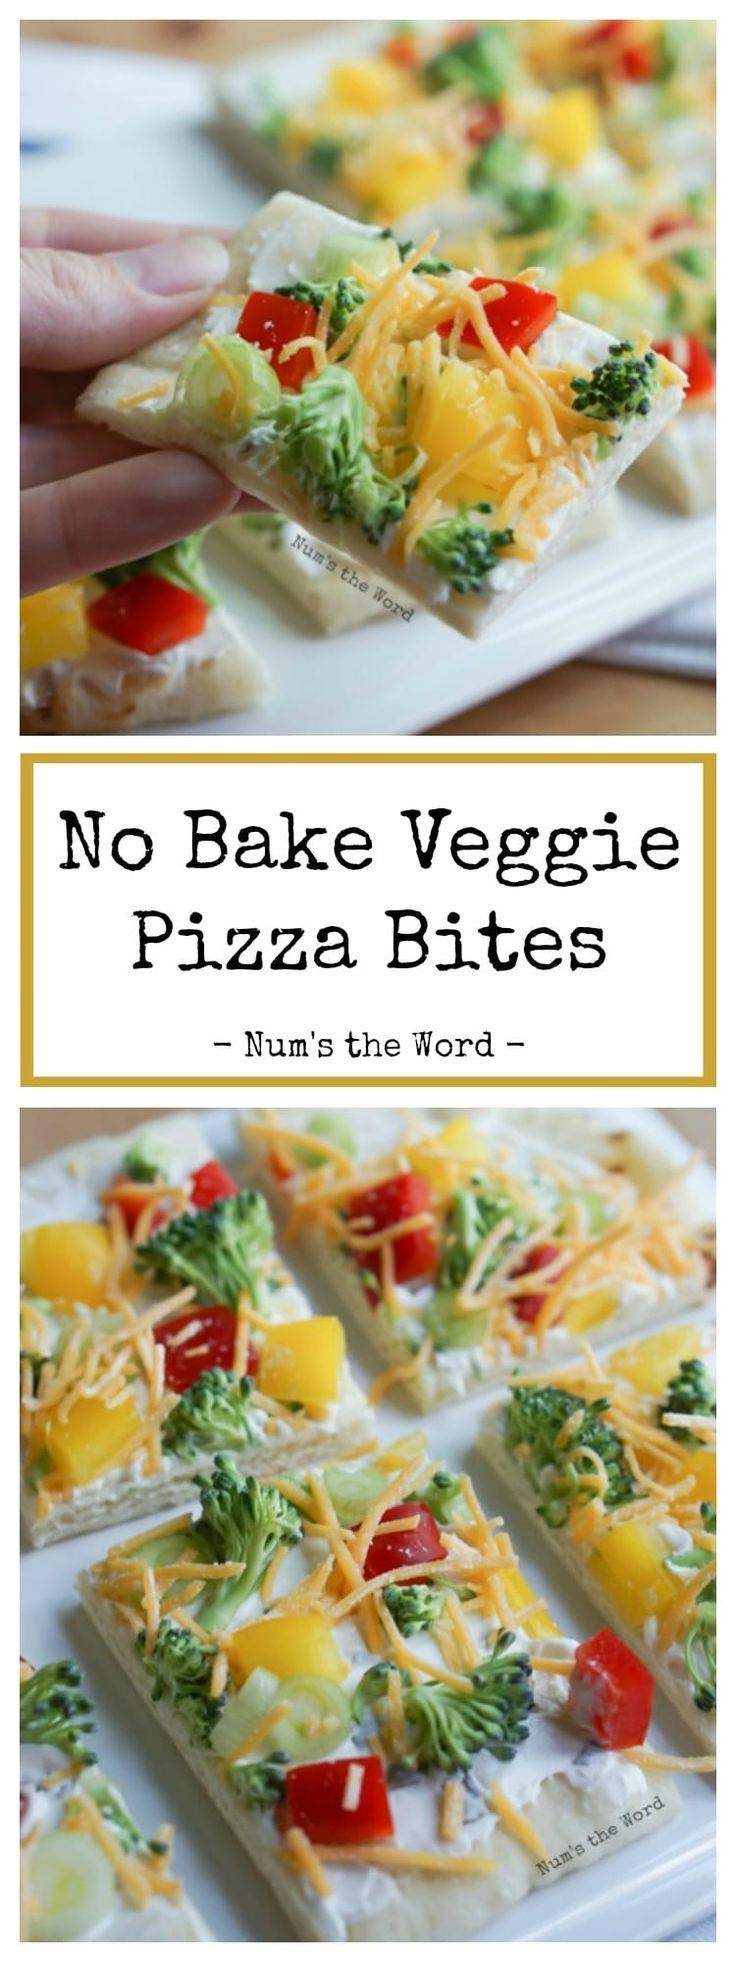 No Bake Veggie Pizza Bites make for the perfect party appetizer, snack or lunch on a hot summer day! Quick and easy with Naan or Flat Bread at the base!These No Bake Veggie Pizza Bites make for the perfect party appetizer, snack or lunch on a hot summer day! Quick and easy with Naan or Flat Bread at the base!